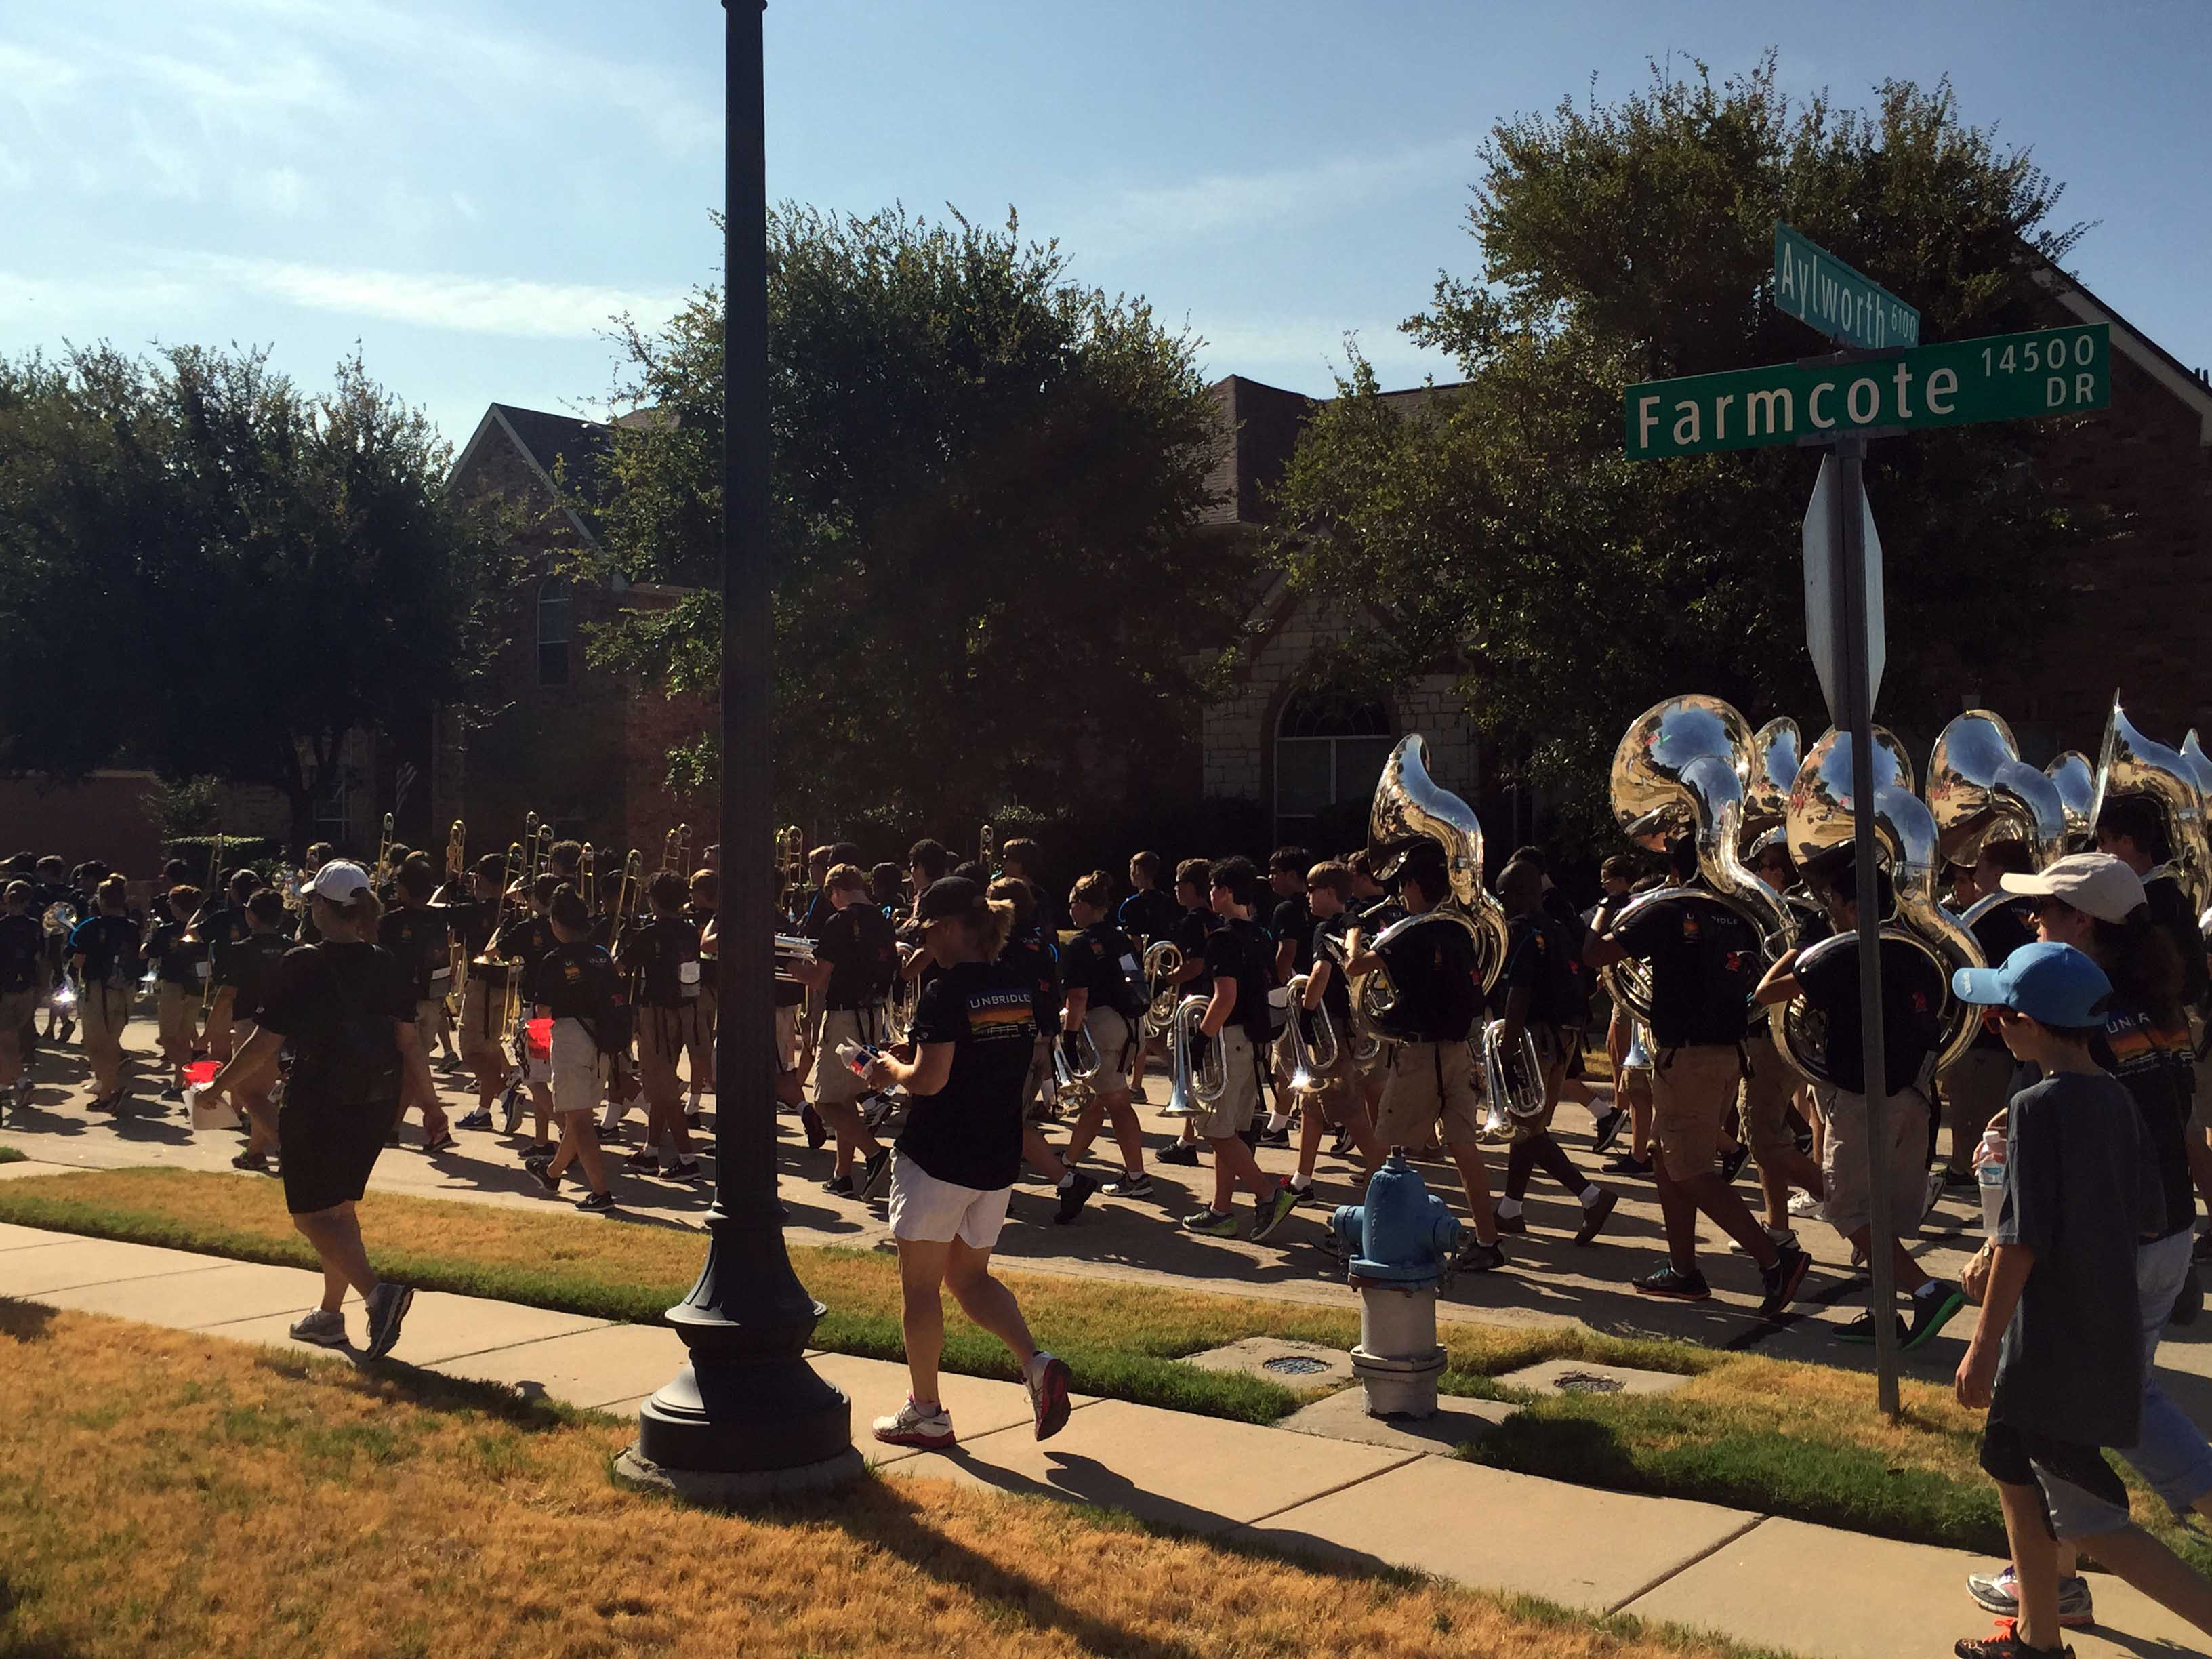 As part of its annual March-a-thon fundraiser, the band spent Saturday morning marching through local neighborhoods including a stroll down Farmcote Drive.